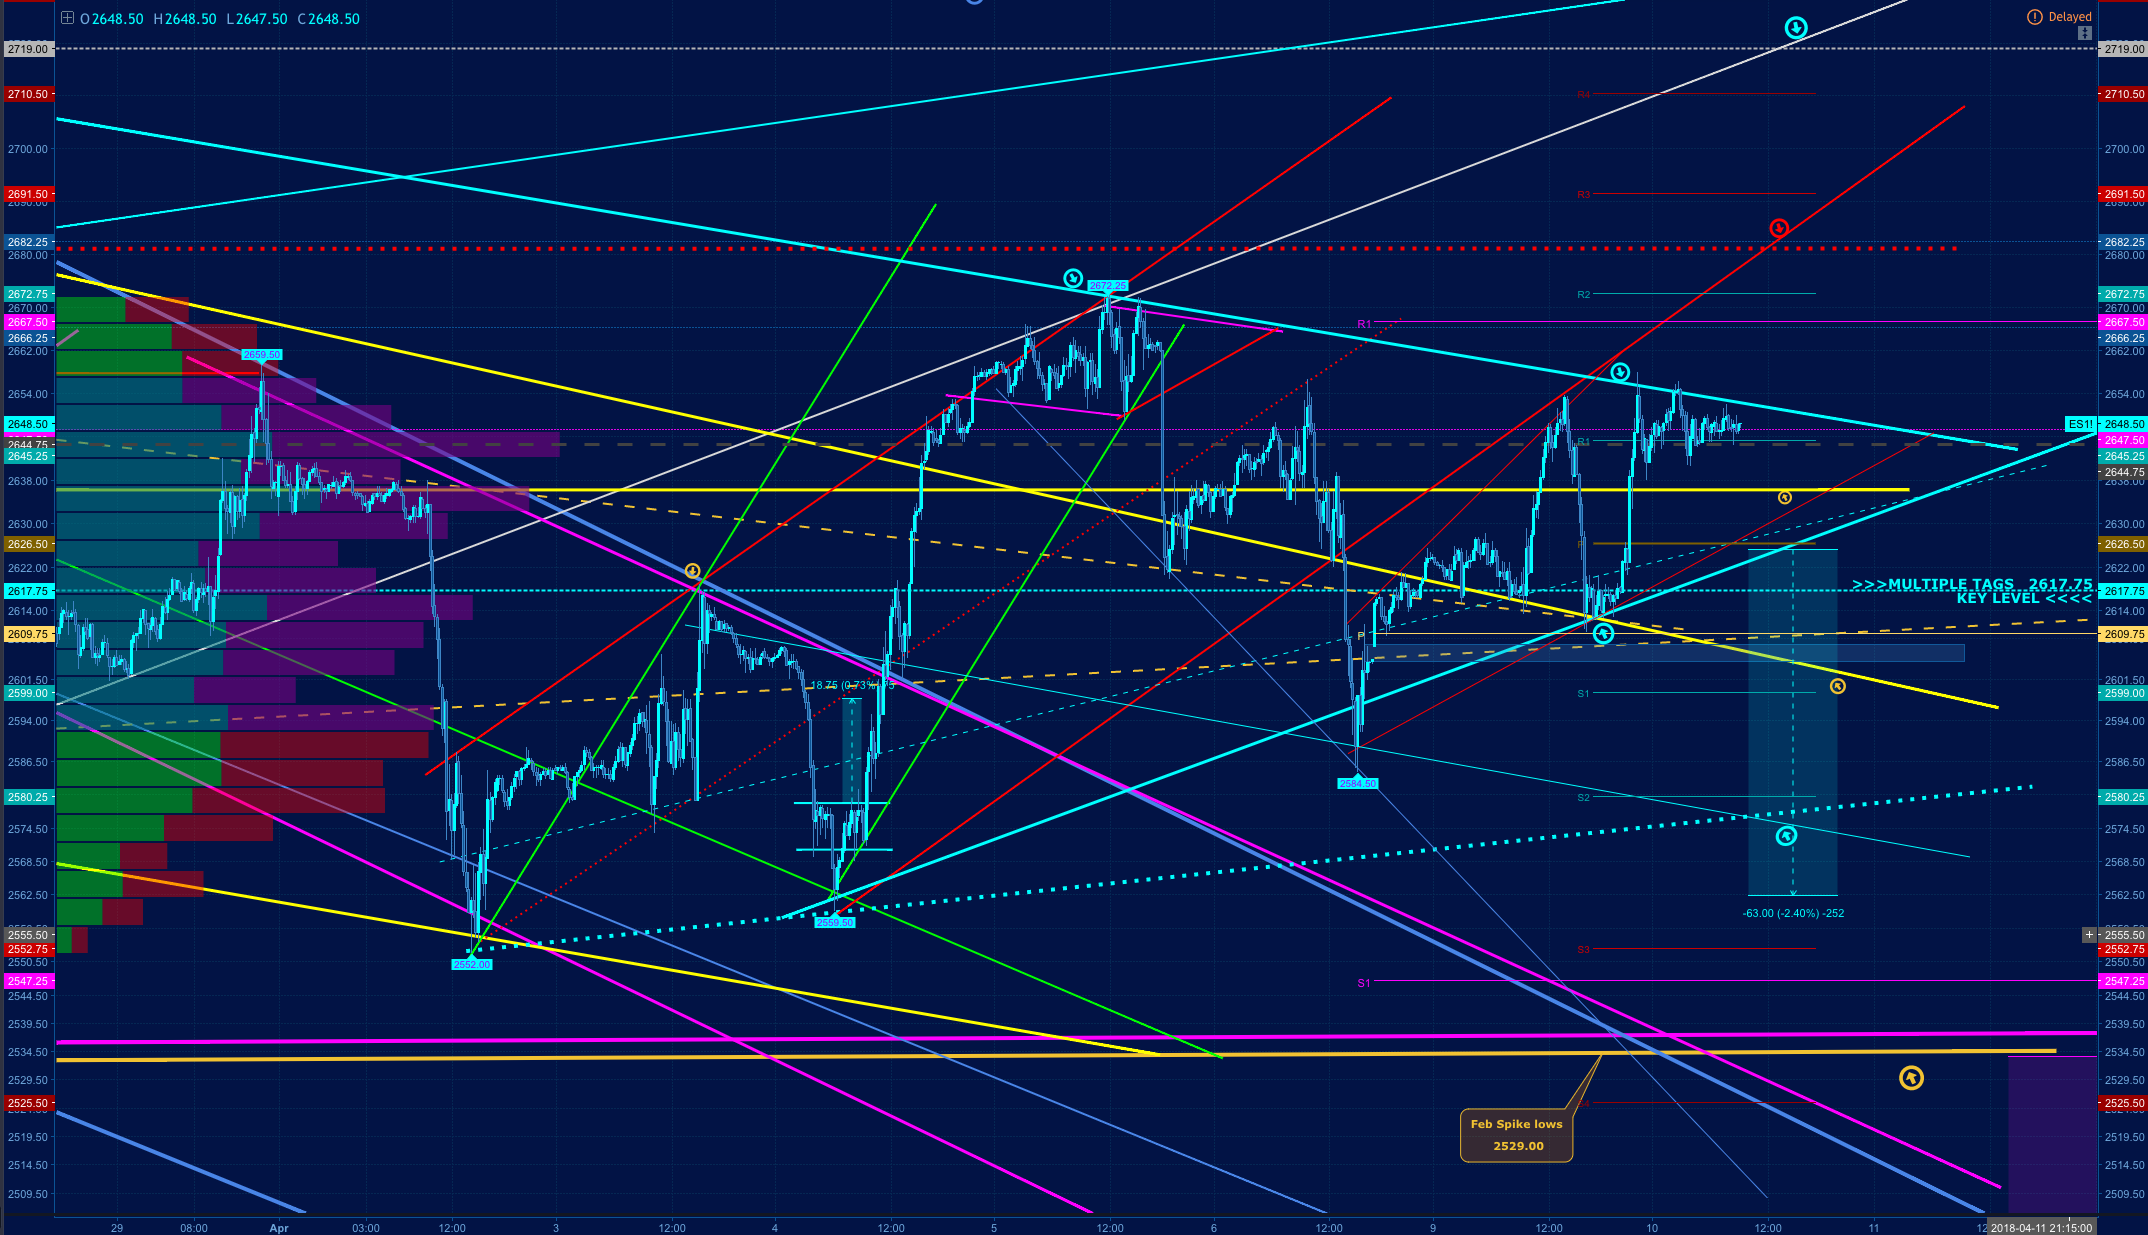 Screen Shot 2018-04-10 at 6.28.03 AM.png